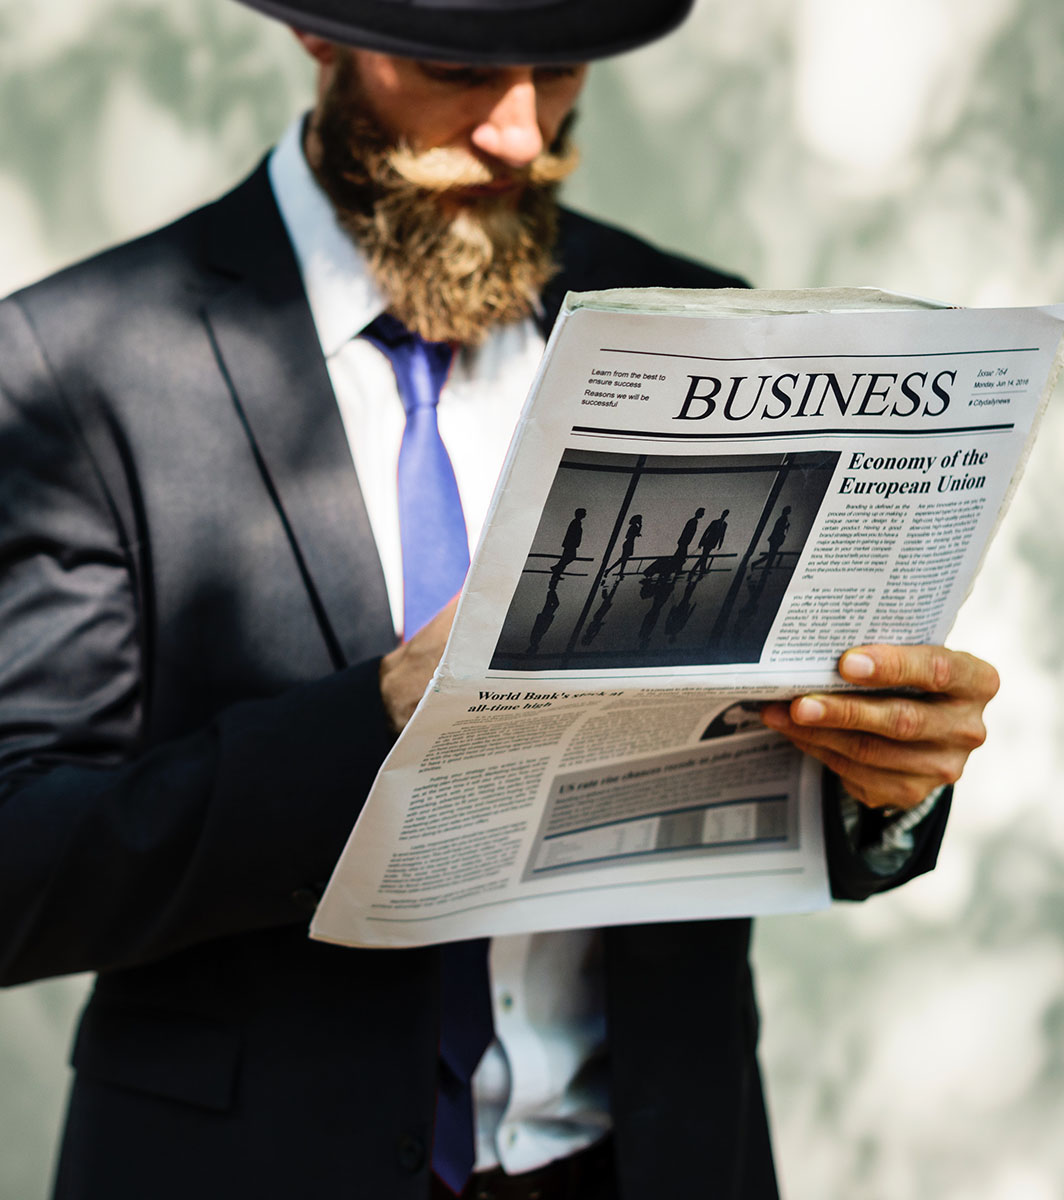 THURSDAYBusiness & Torah - Community rabbinical experts will be providing insights on adapting Torah principles to your business and profession.